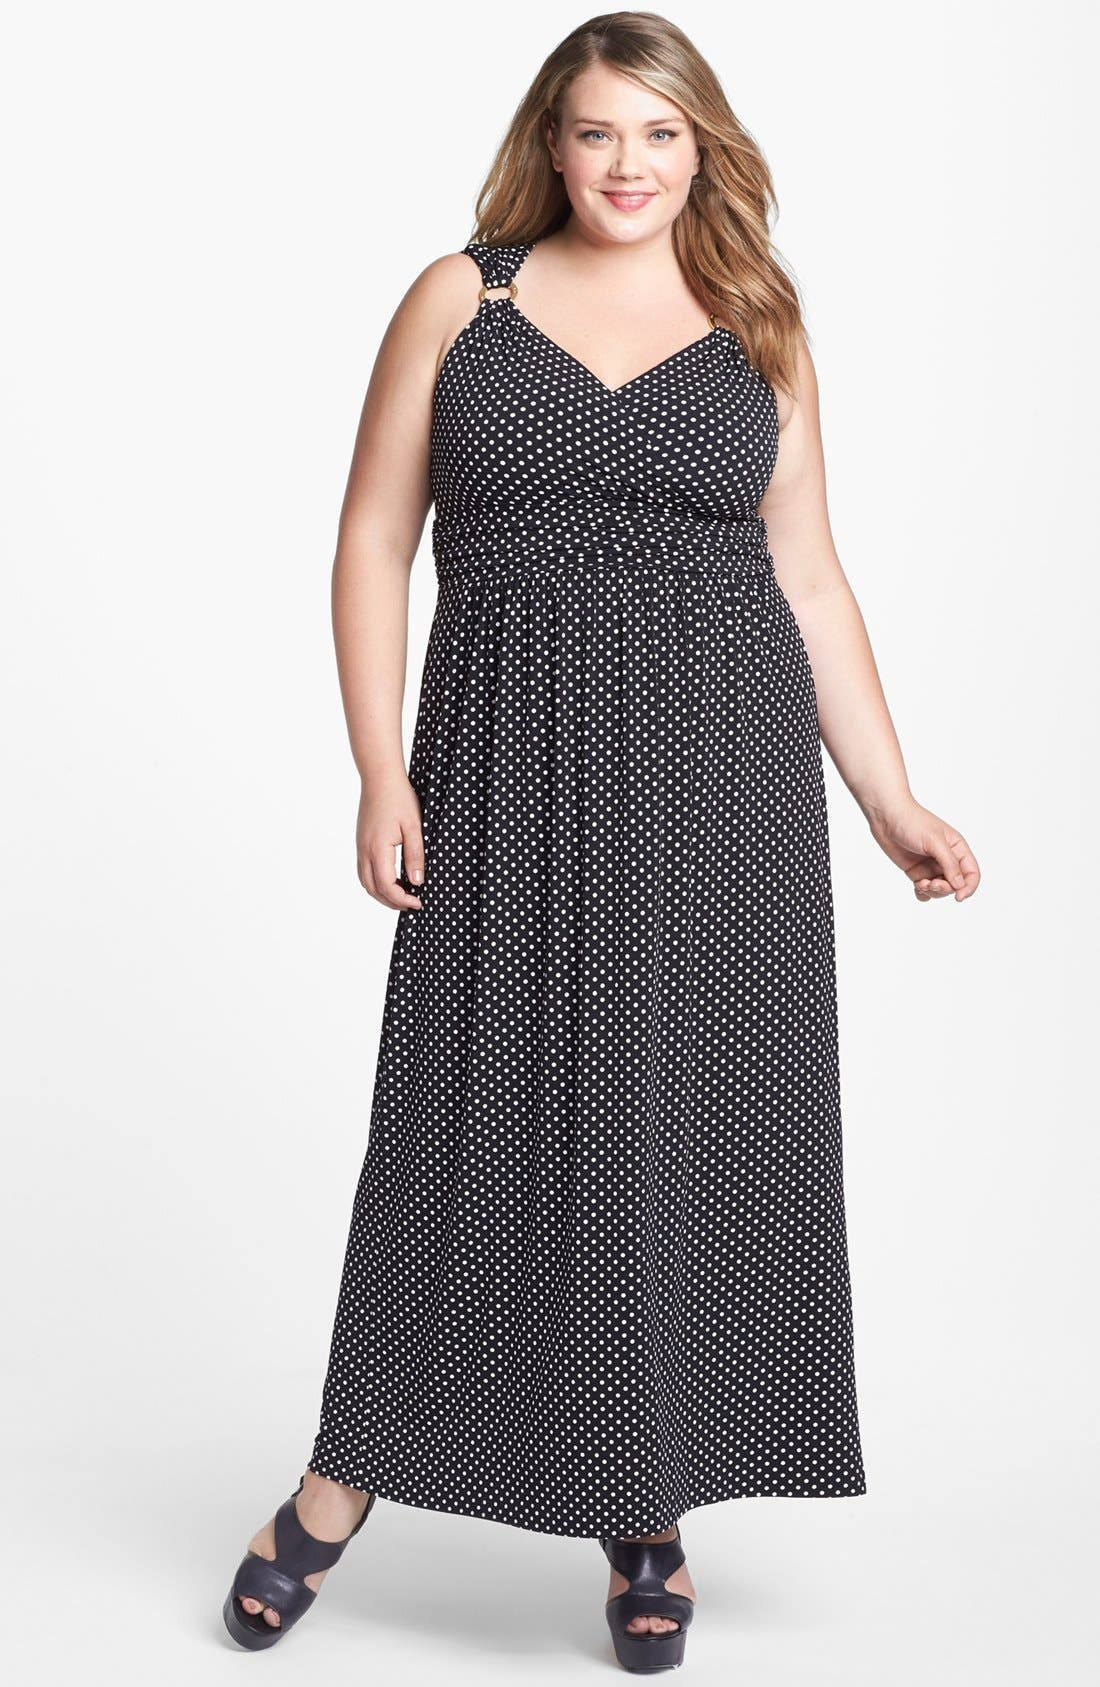 Alternate Image 1 Selected - Vince Camuto Polka Dot Maxi Dress (Plus Size) (Online Only)